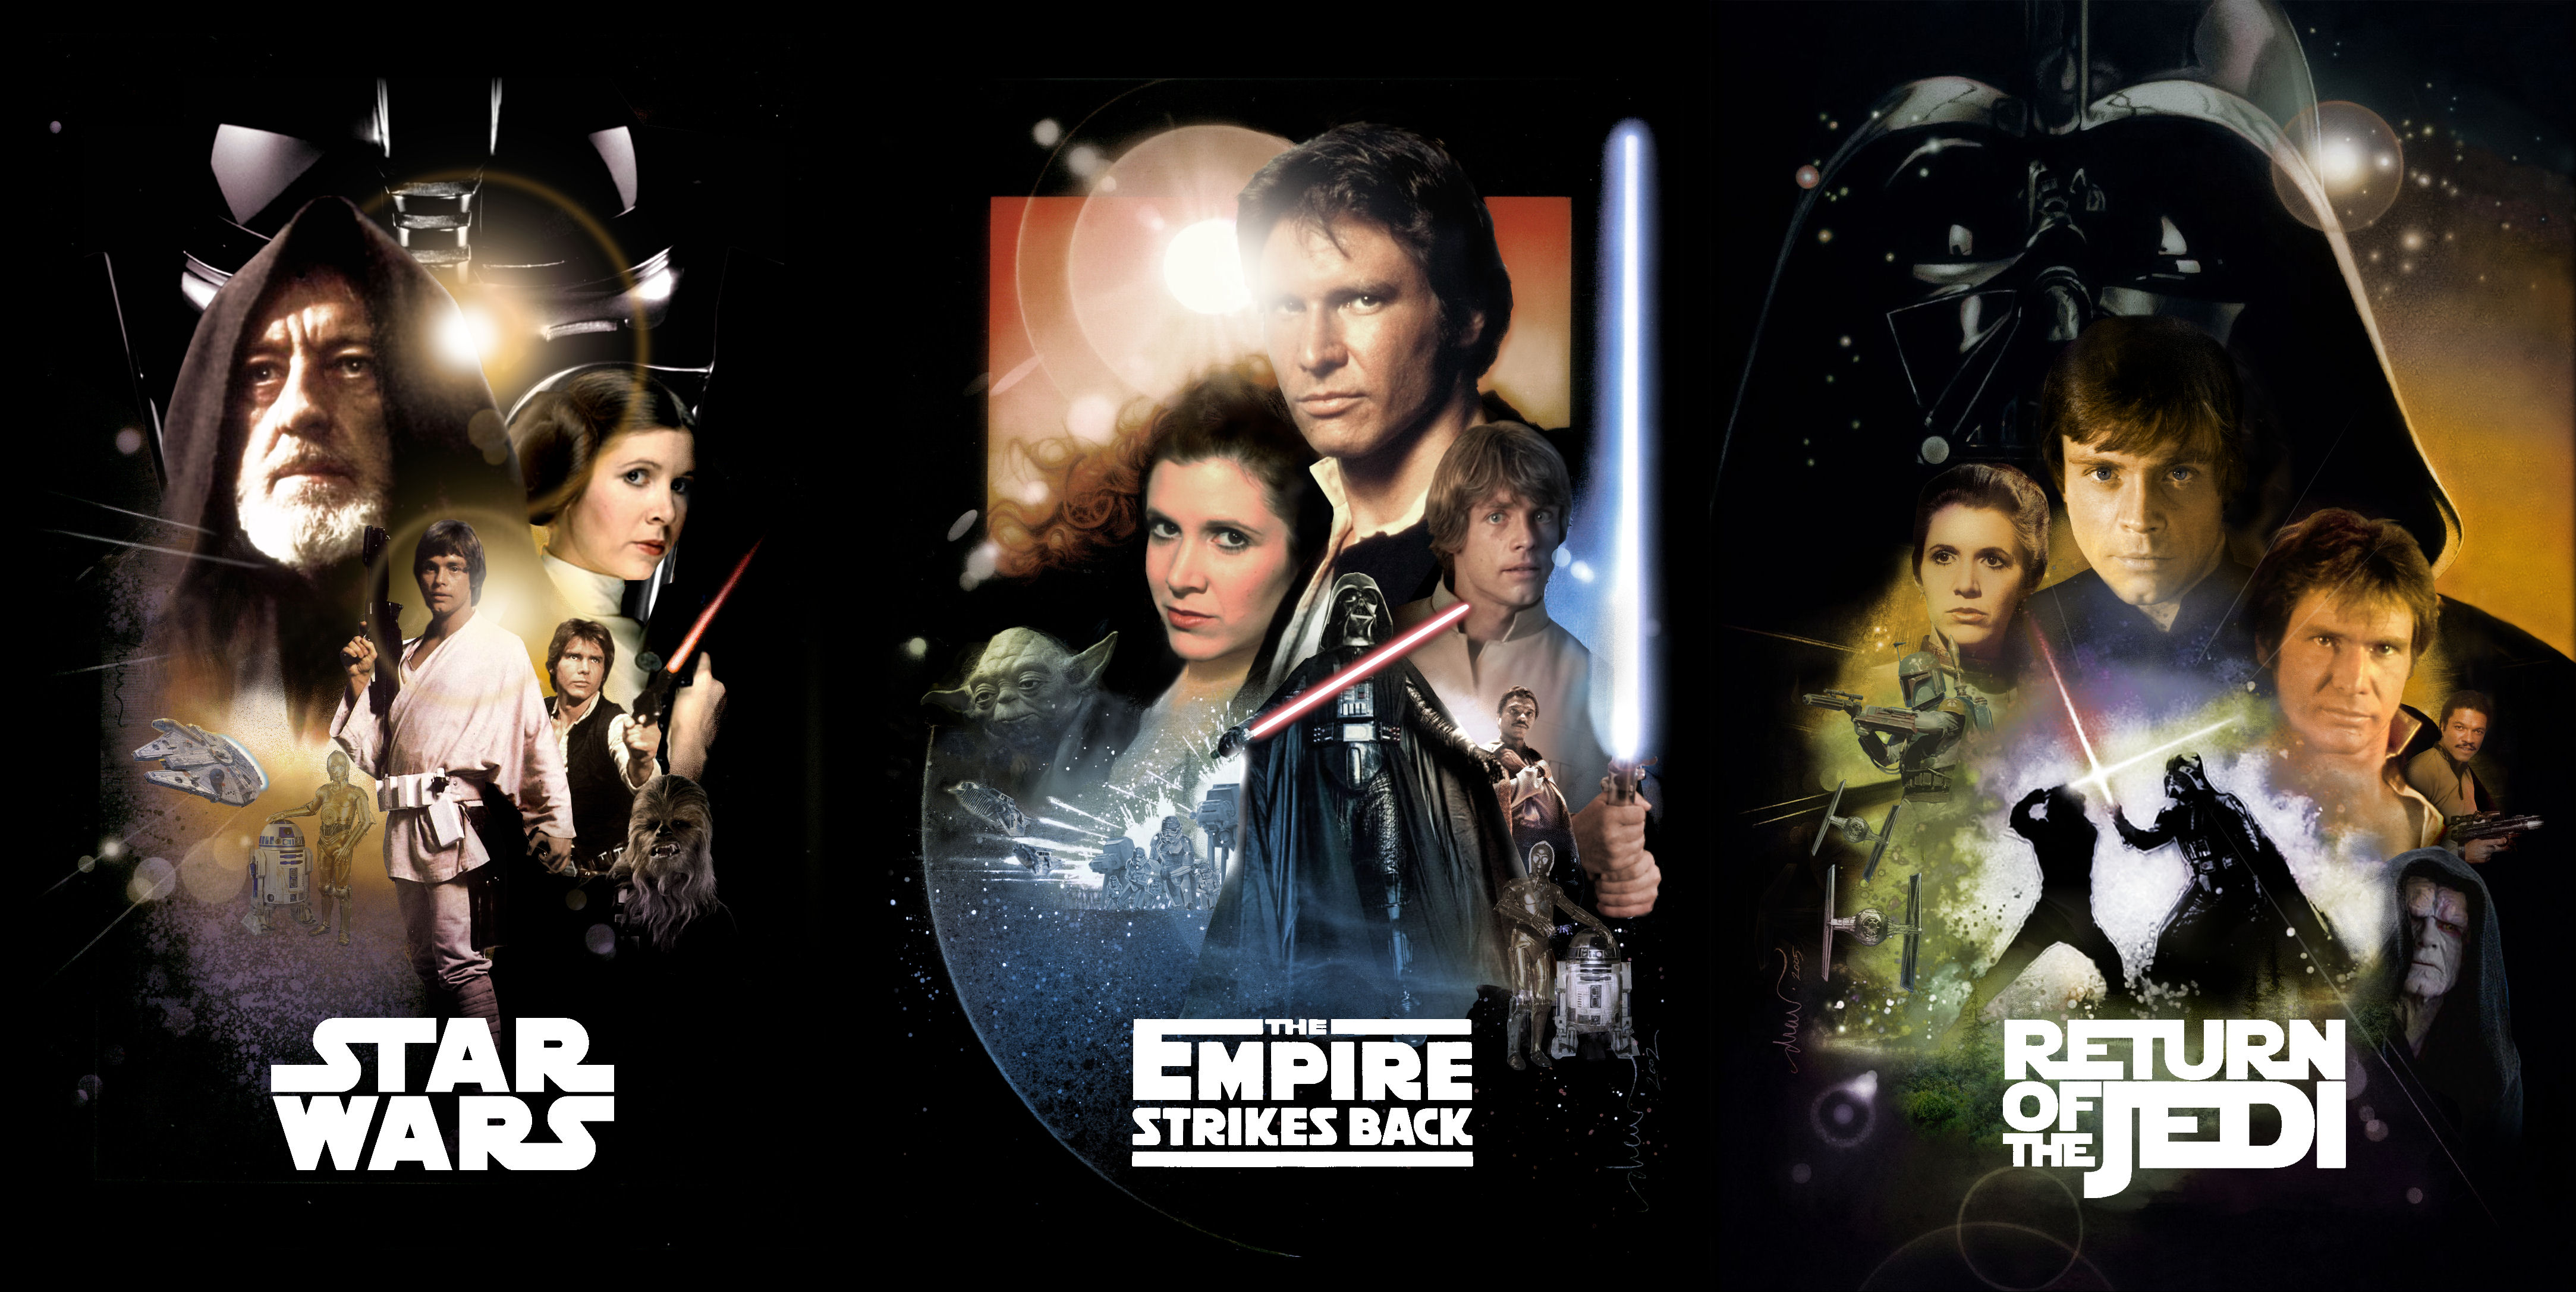 an analysis of special effects in the movie star wars Star wars changes - part 1 of 8 critical analysis 10 most pointless star wars movie changes you never even noticed - duration.